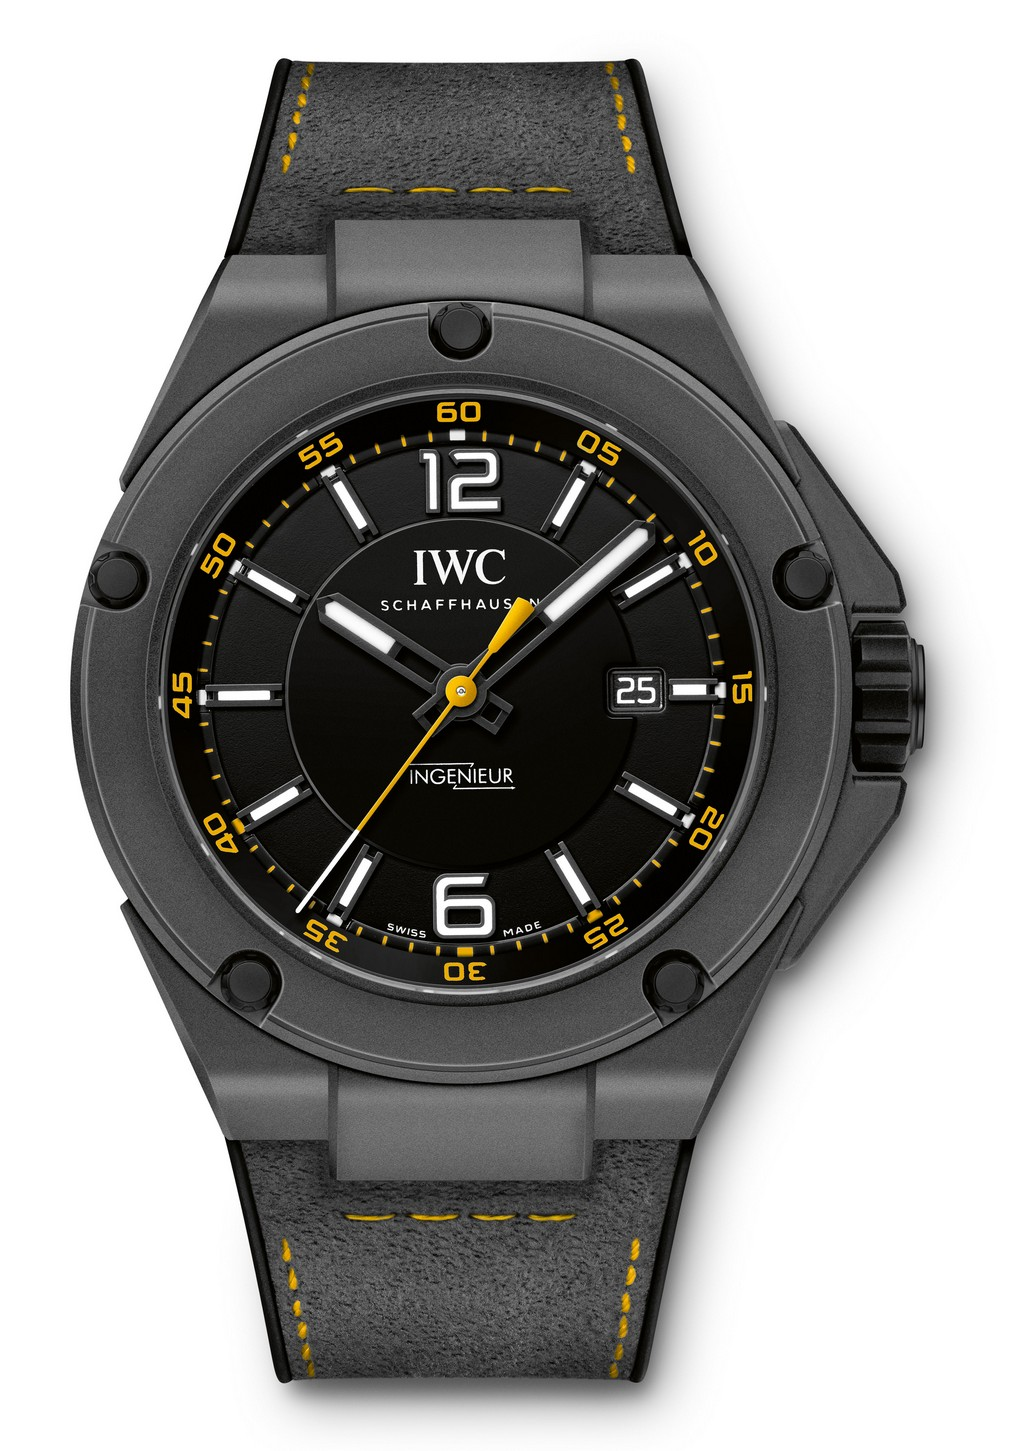 IWC Ingenieur Automatic AMG GT edition Quadrante